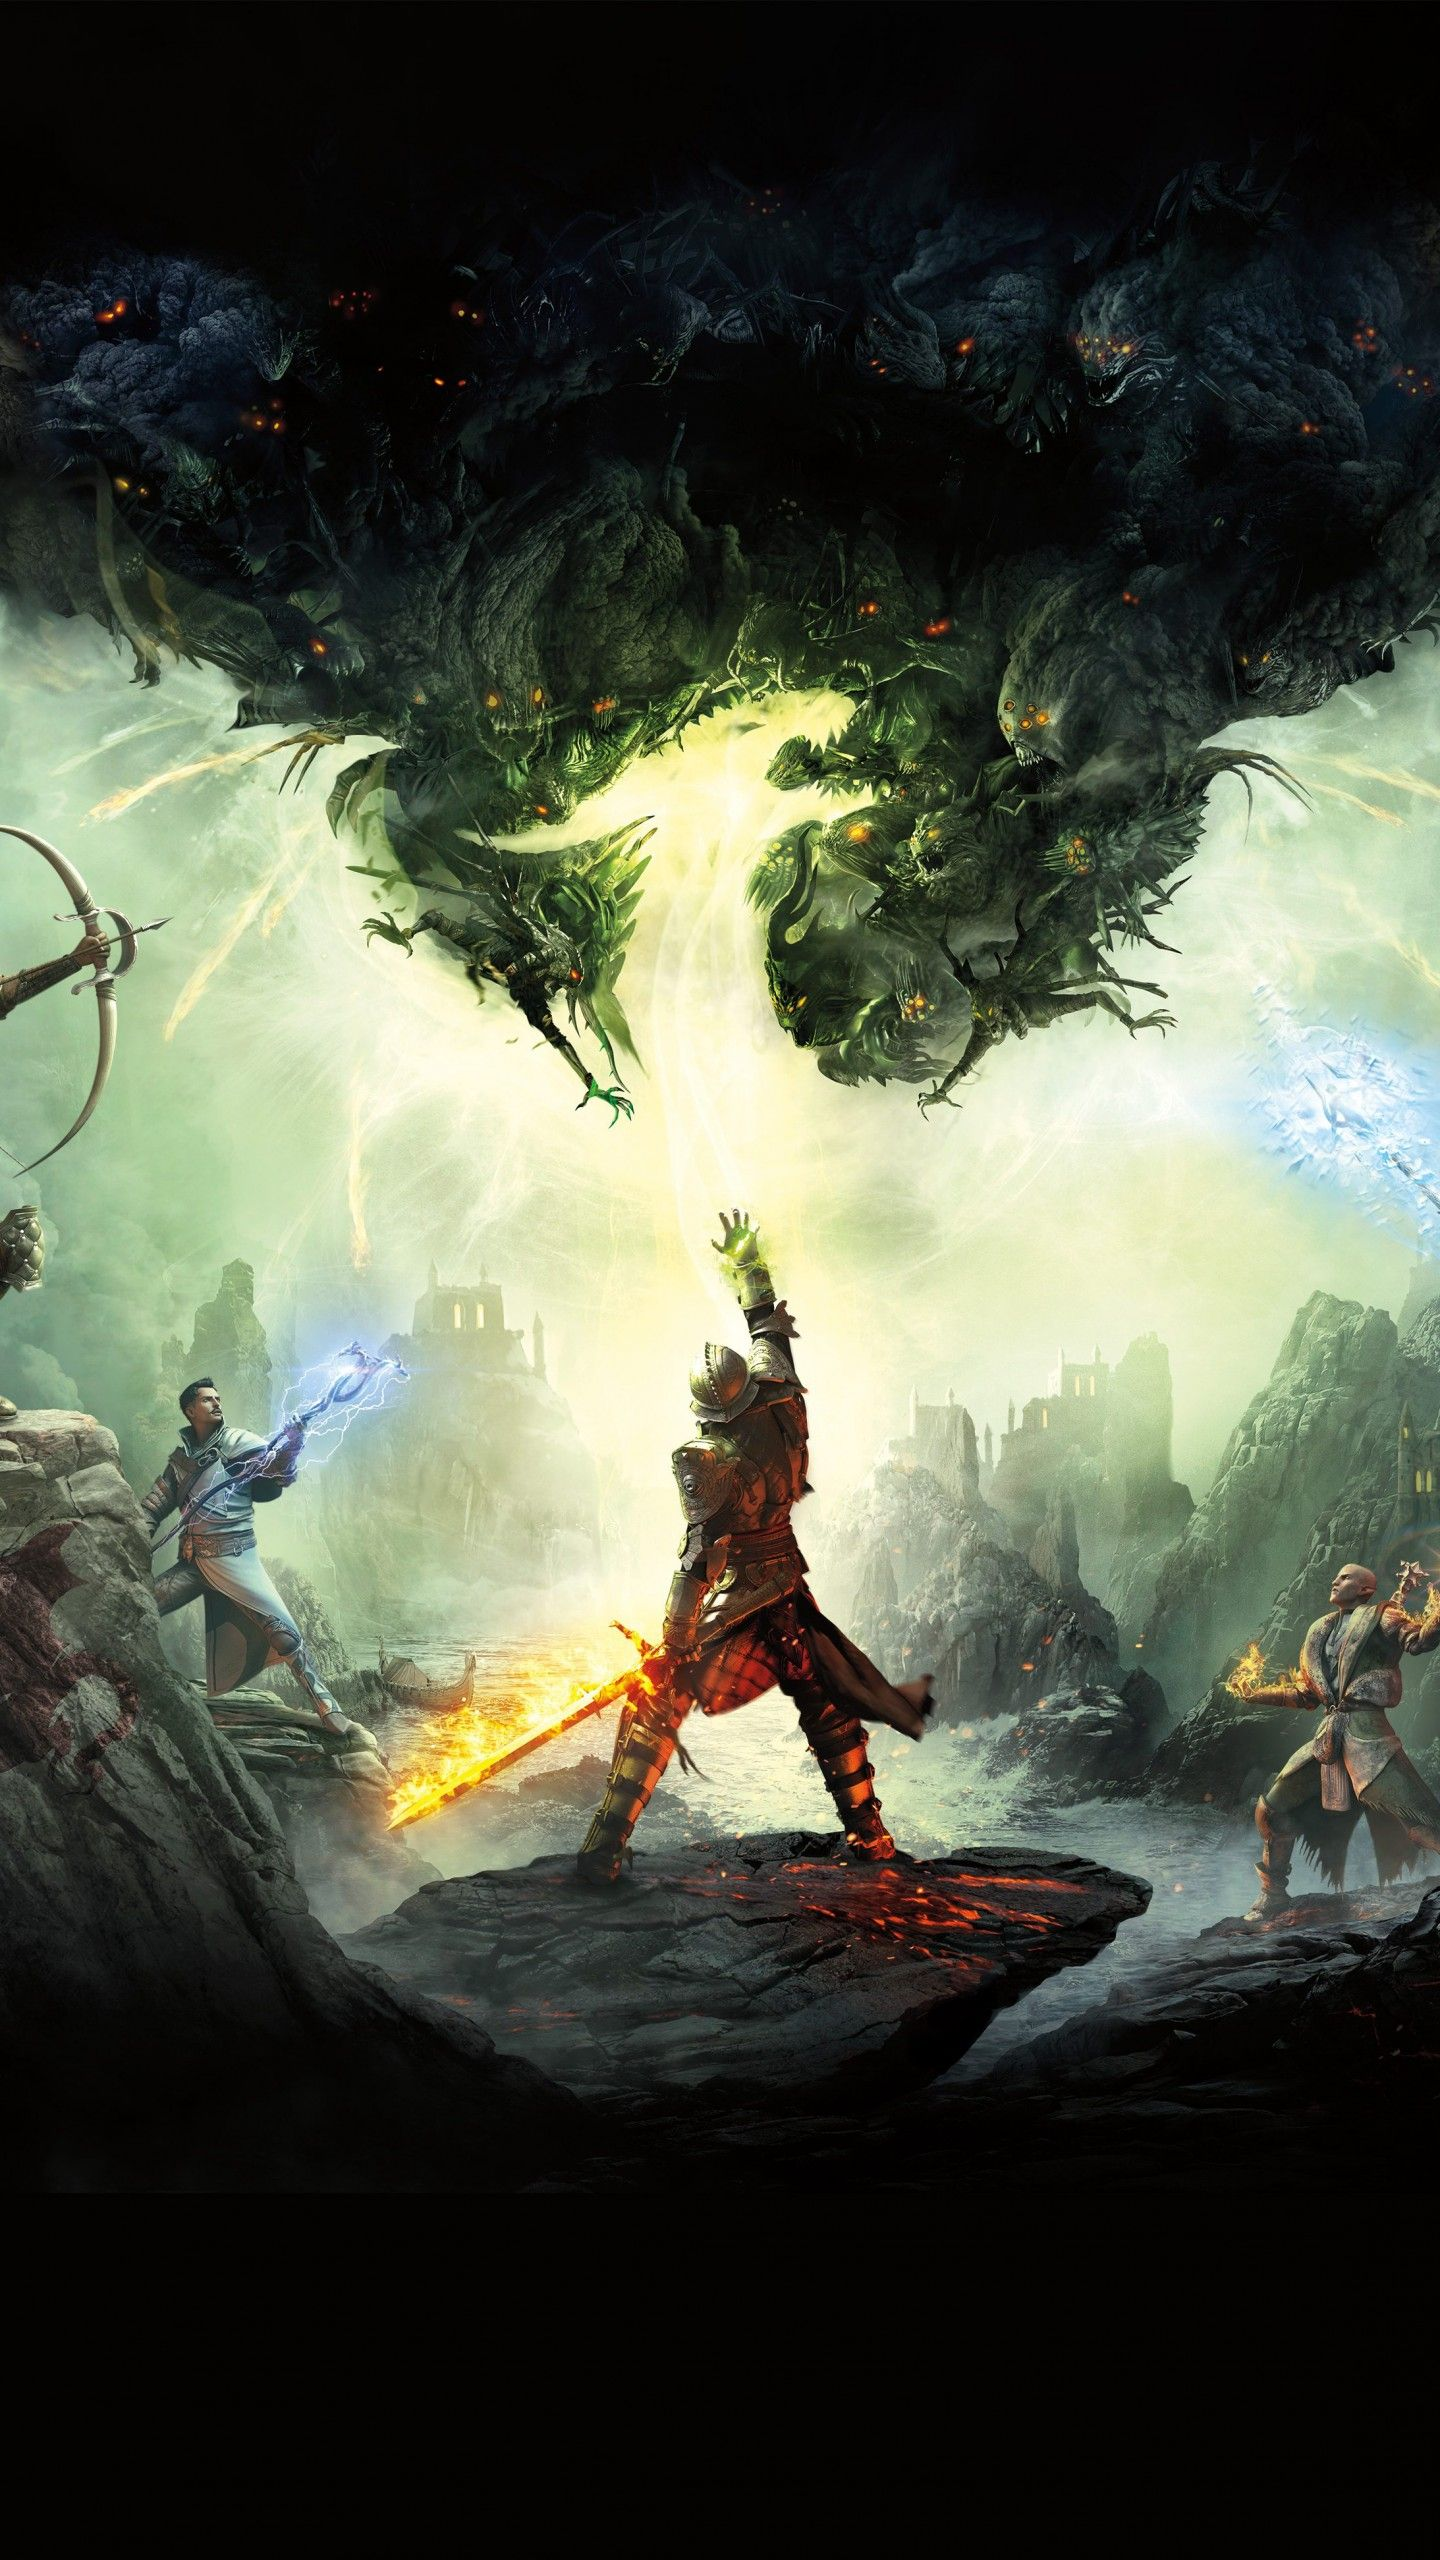 Wallpaper Dragon Age Inquisition Artwork 4k 8k Games Dragon